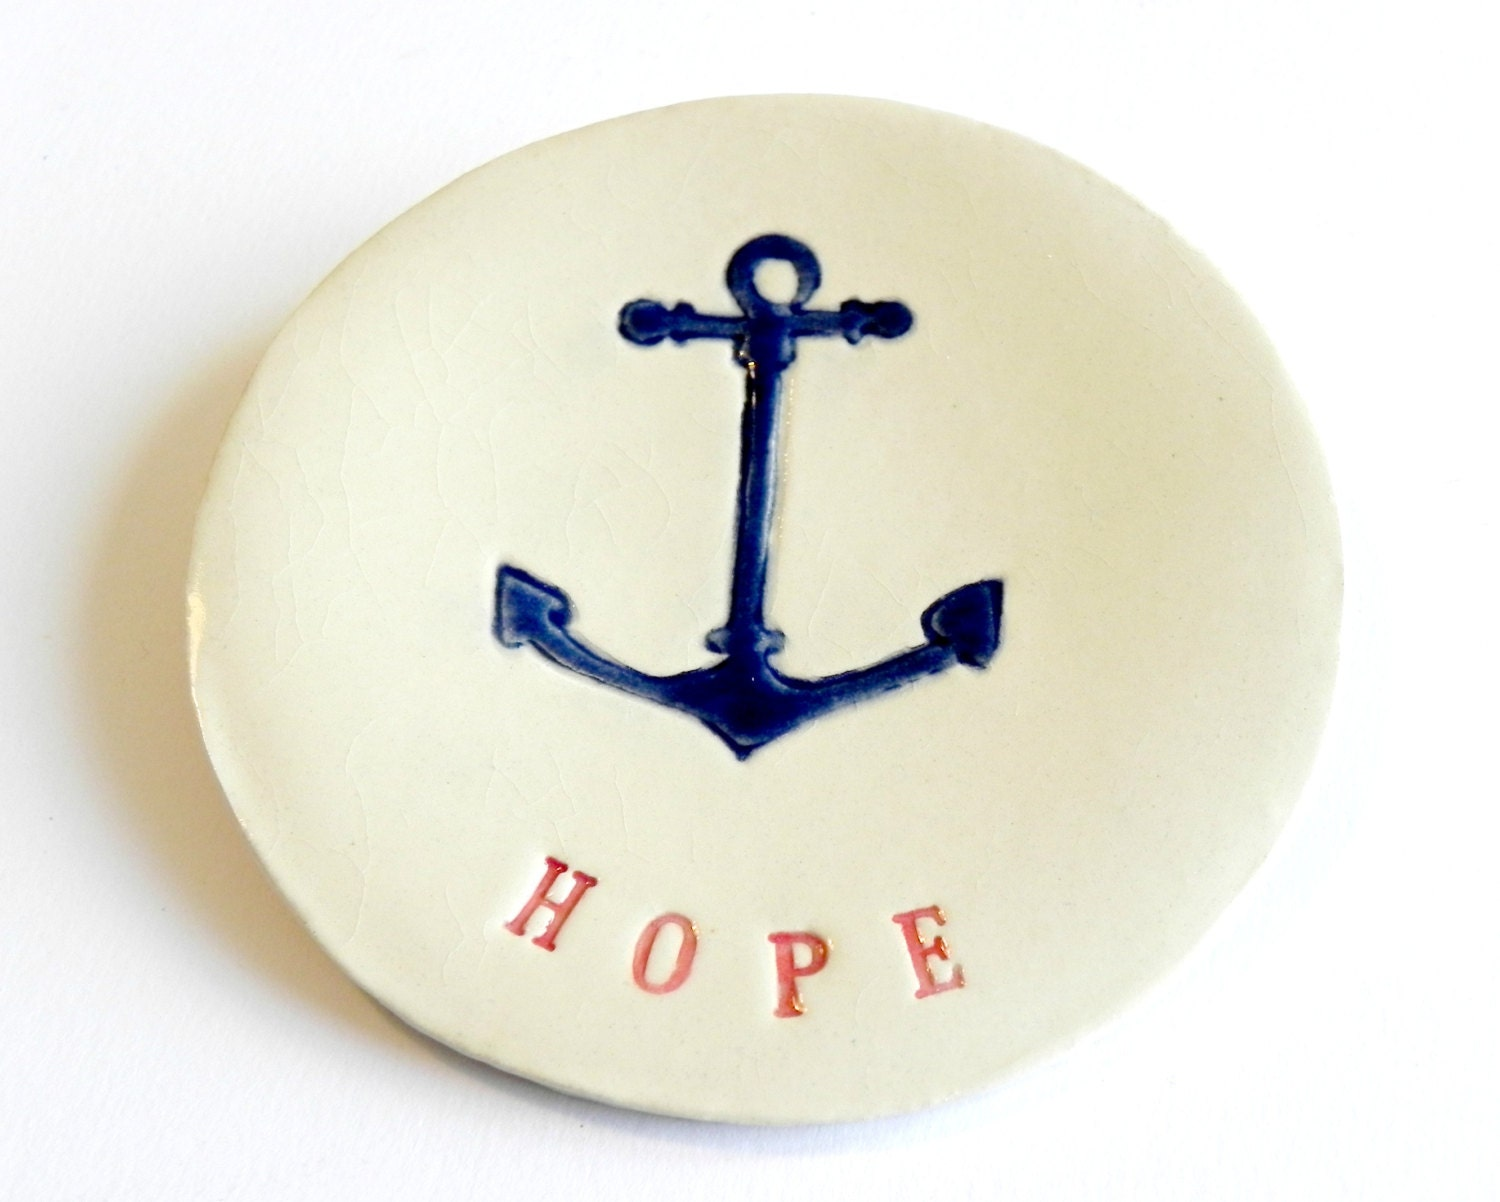 Ceramic Jewelry Dish Anchor Plate Red and Navy Blue Pottery Plate HOPE Text Message - Ceraminic